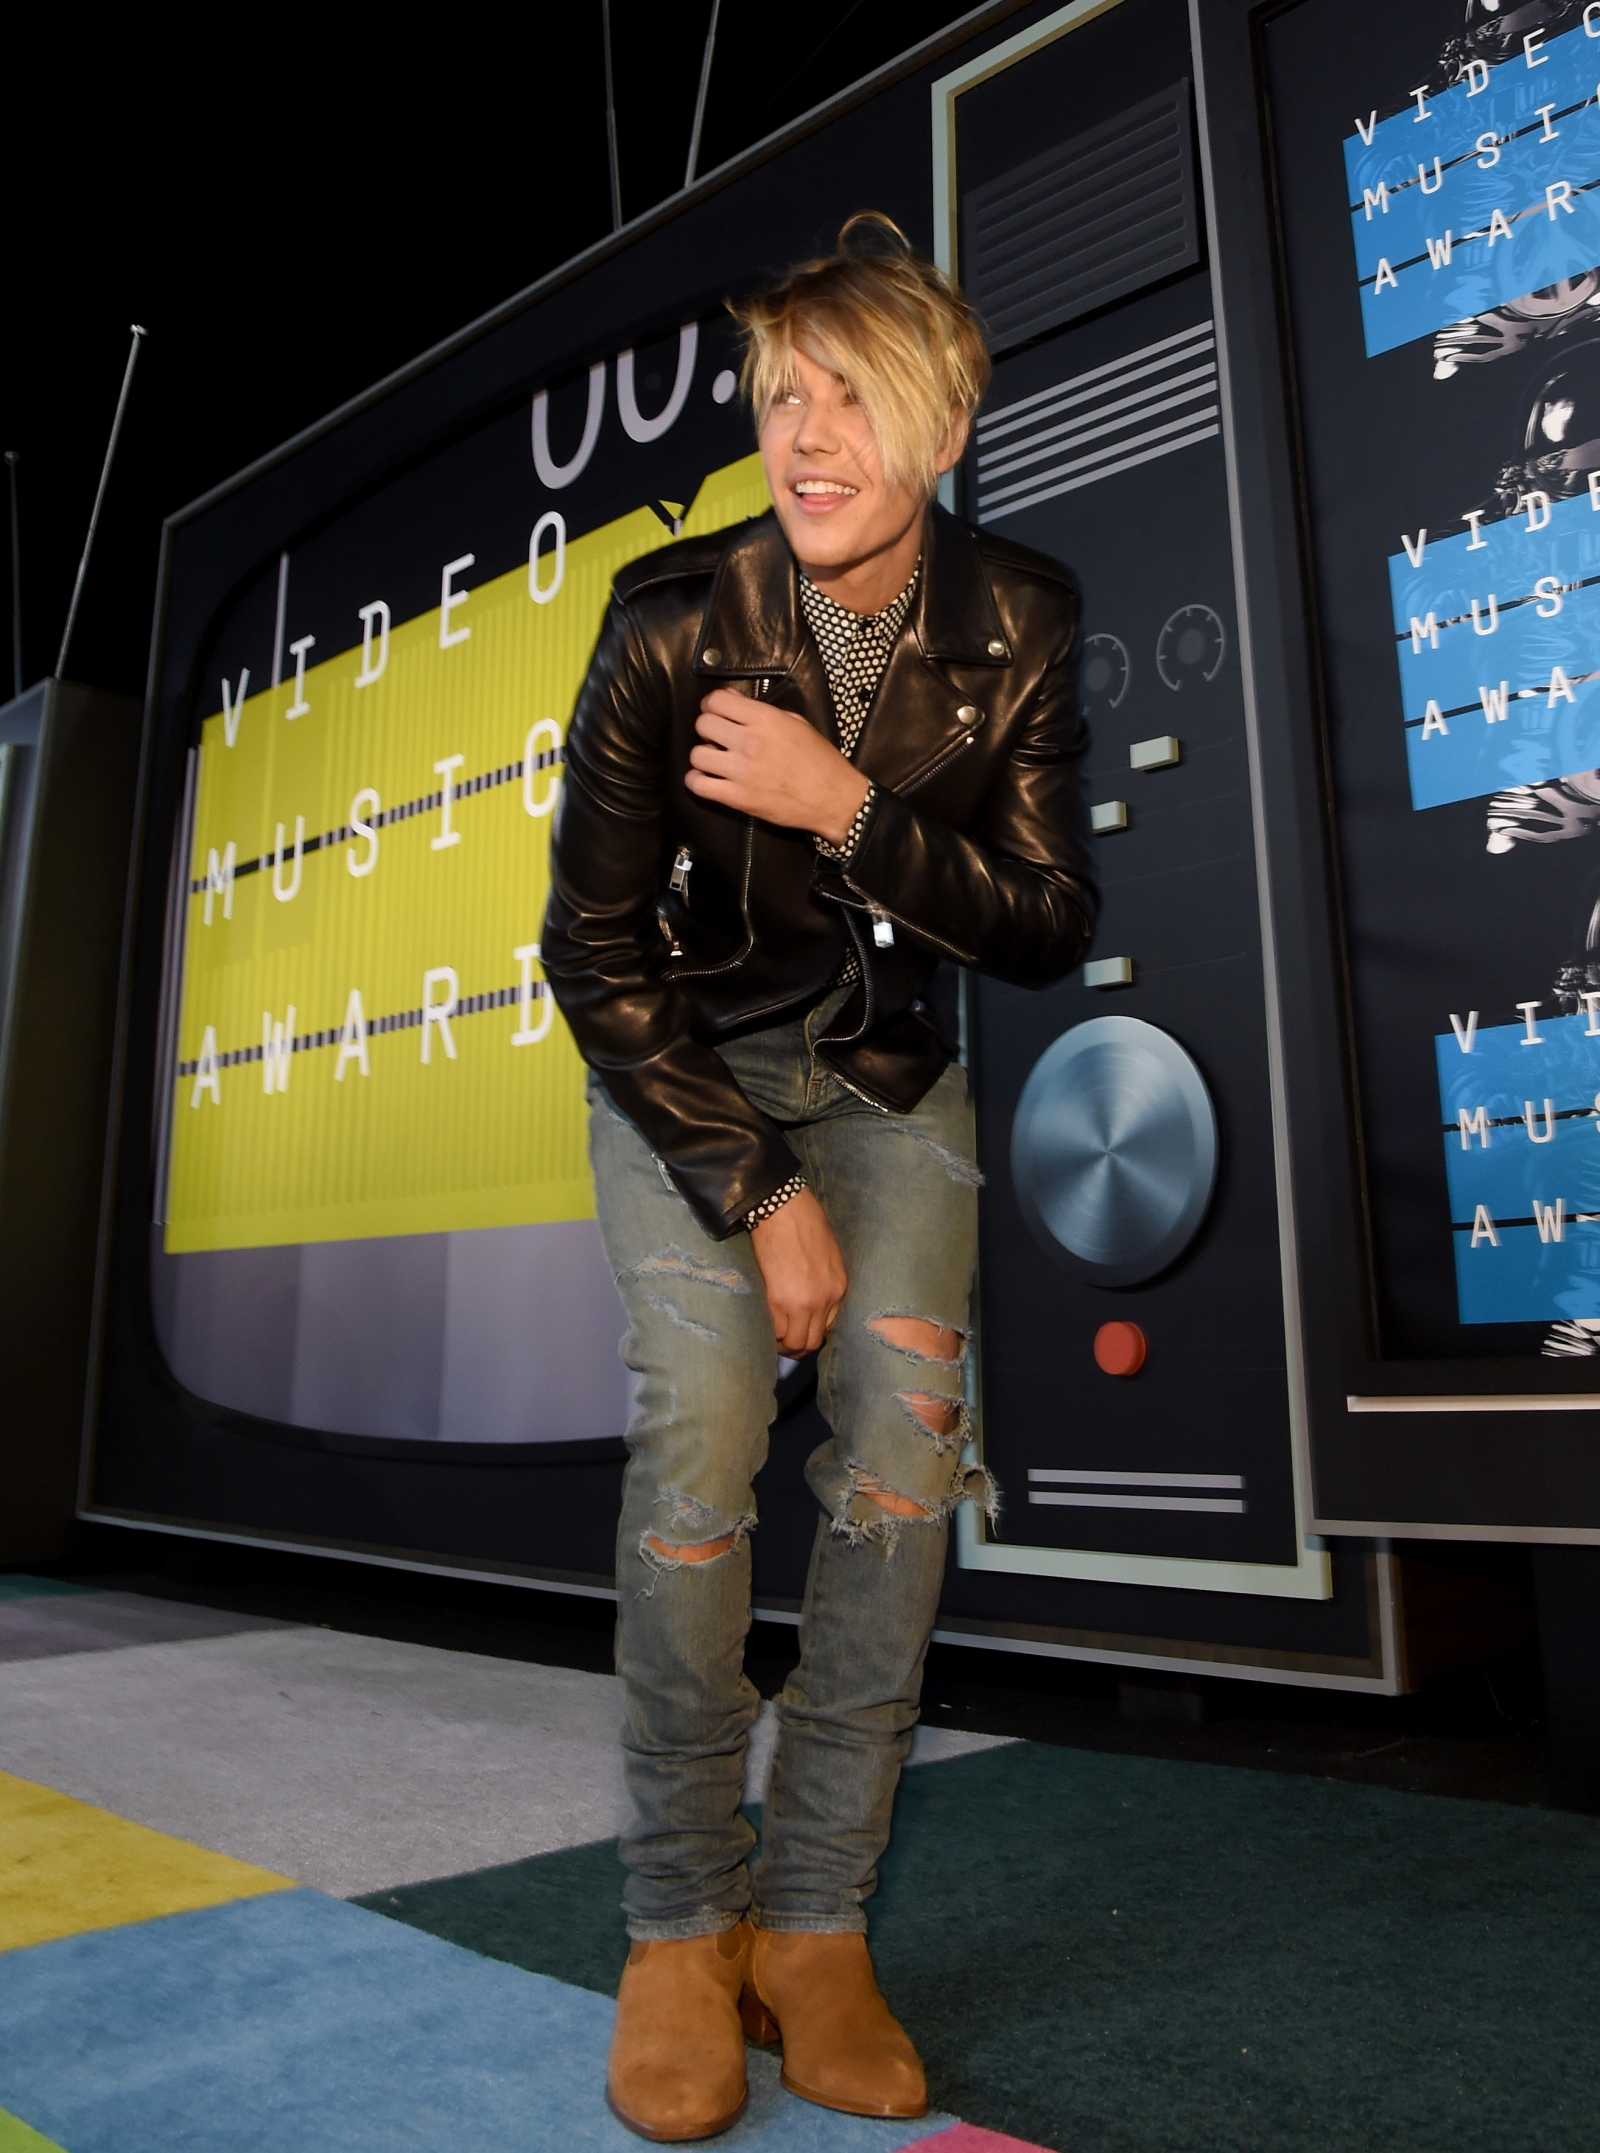 VMA Justin Bieber In Tears After Performance - Justin bieber new hairstyle vma